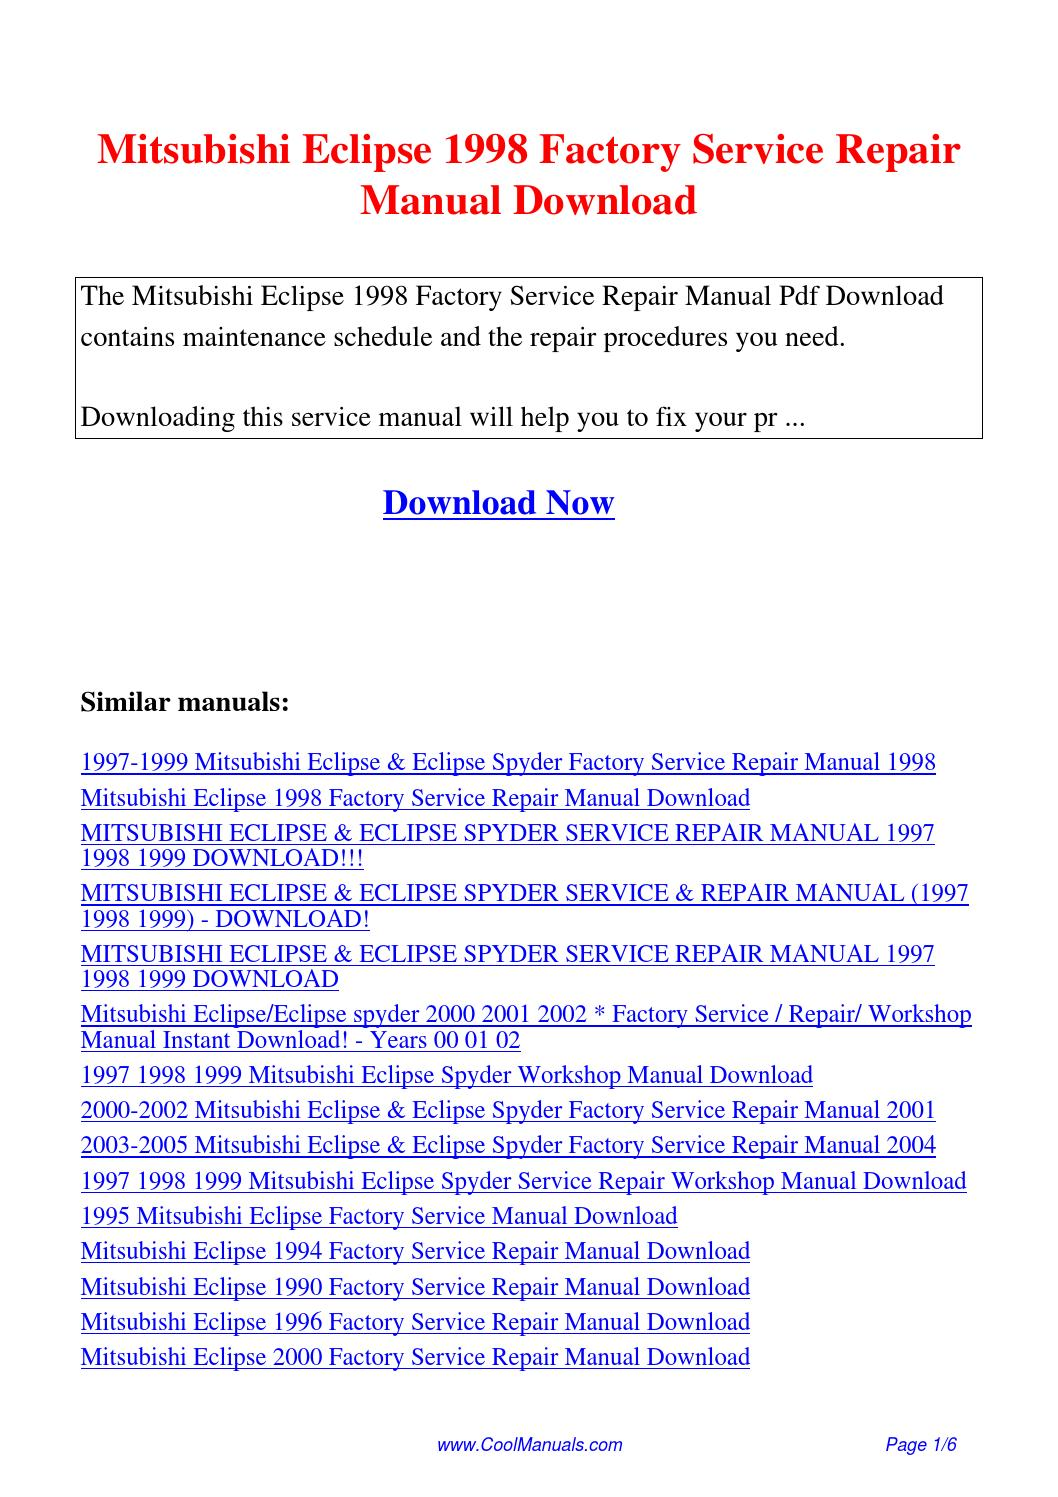 Mitsubishi Eclipse 1998 Factory Service Repair Manual.pdf by Linda Pong -  issuu